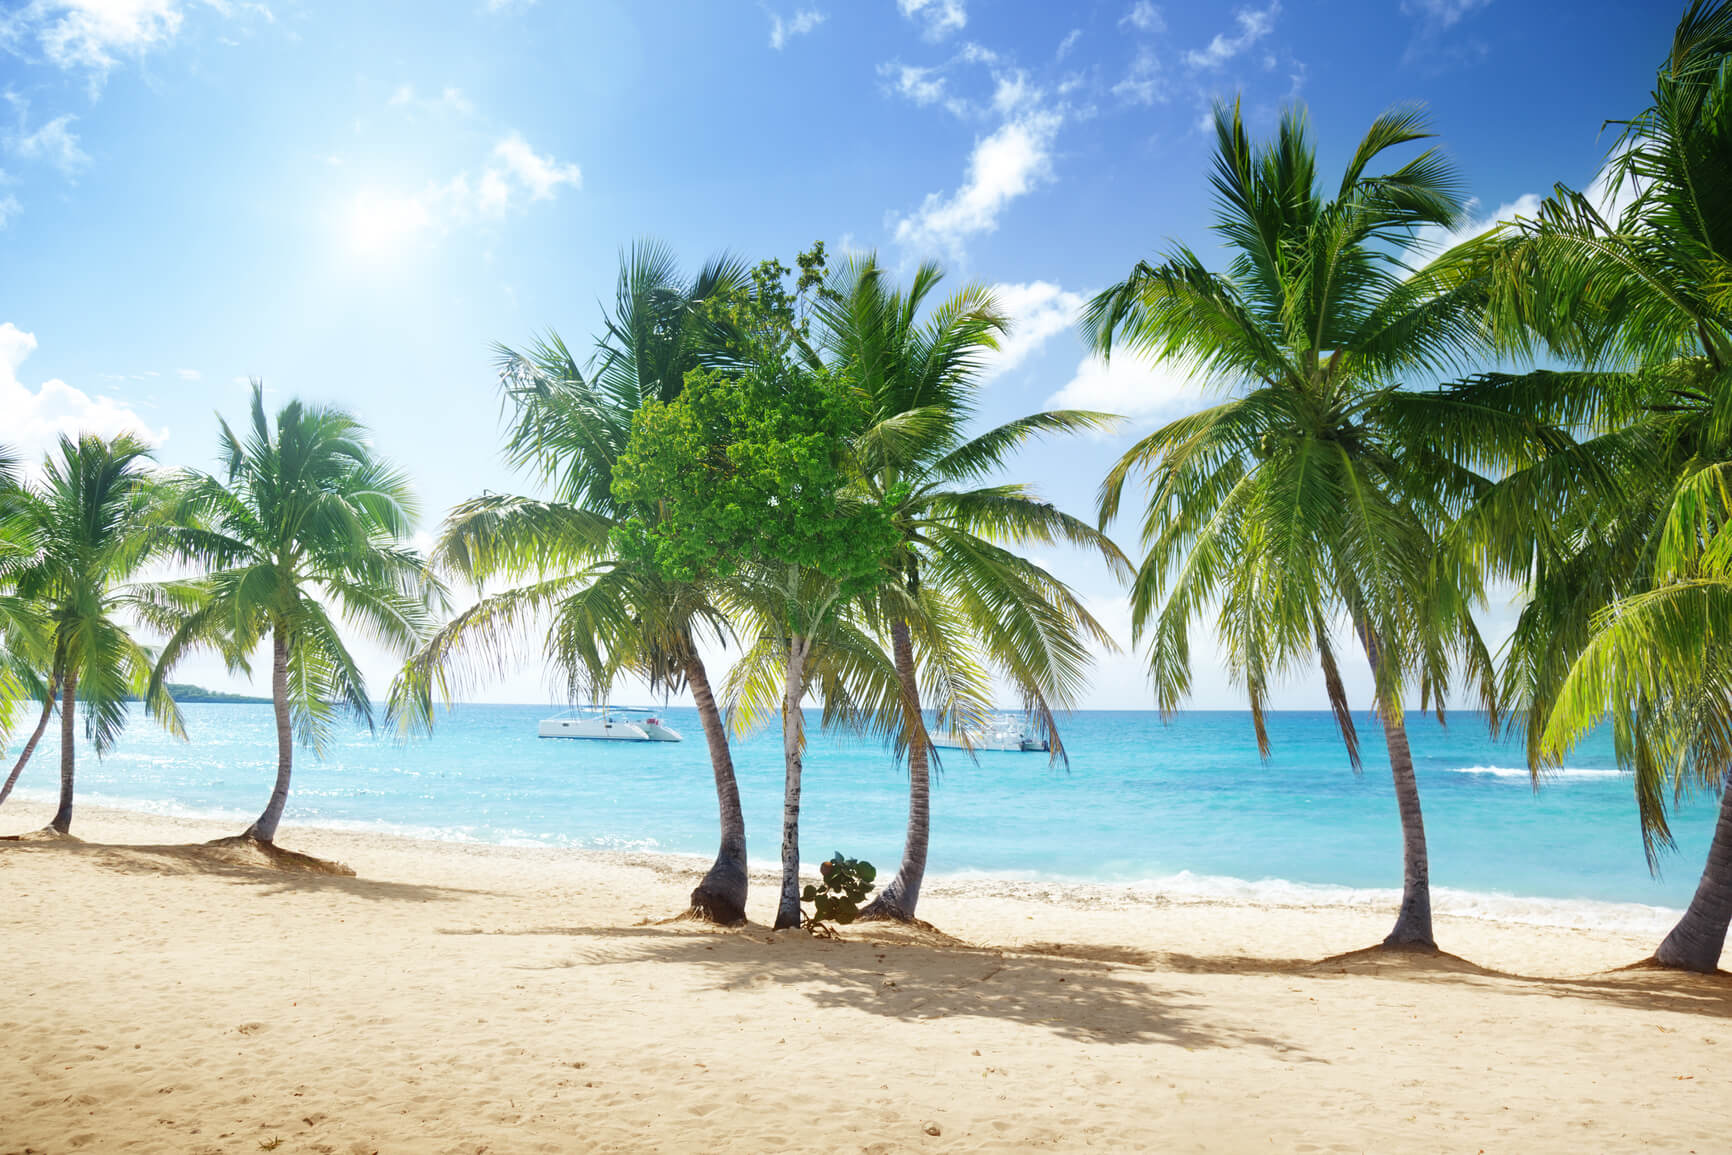 Non-stop from UK cities to the Dominican Republic from only £309 roundtrip